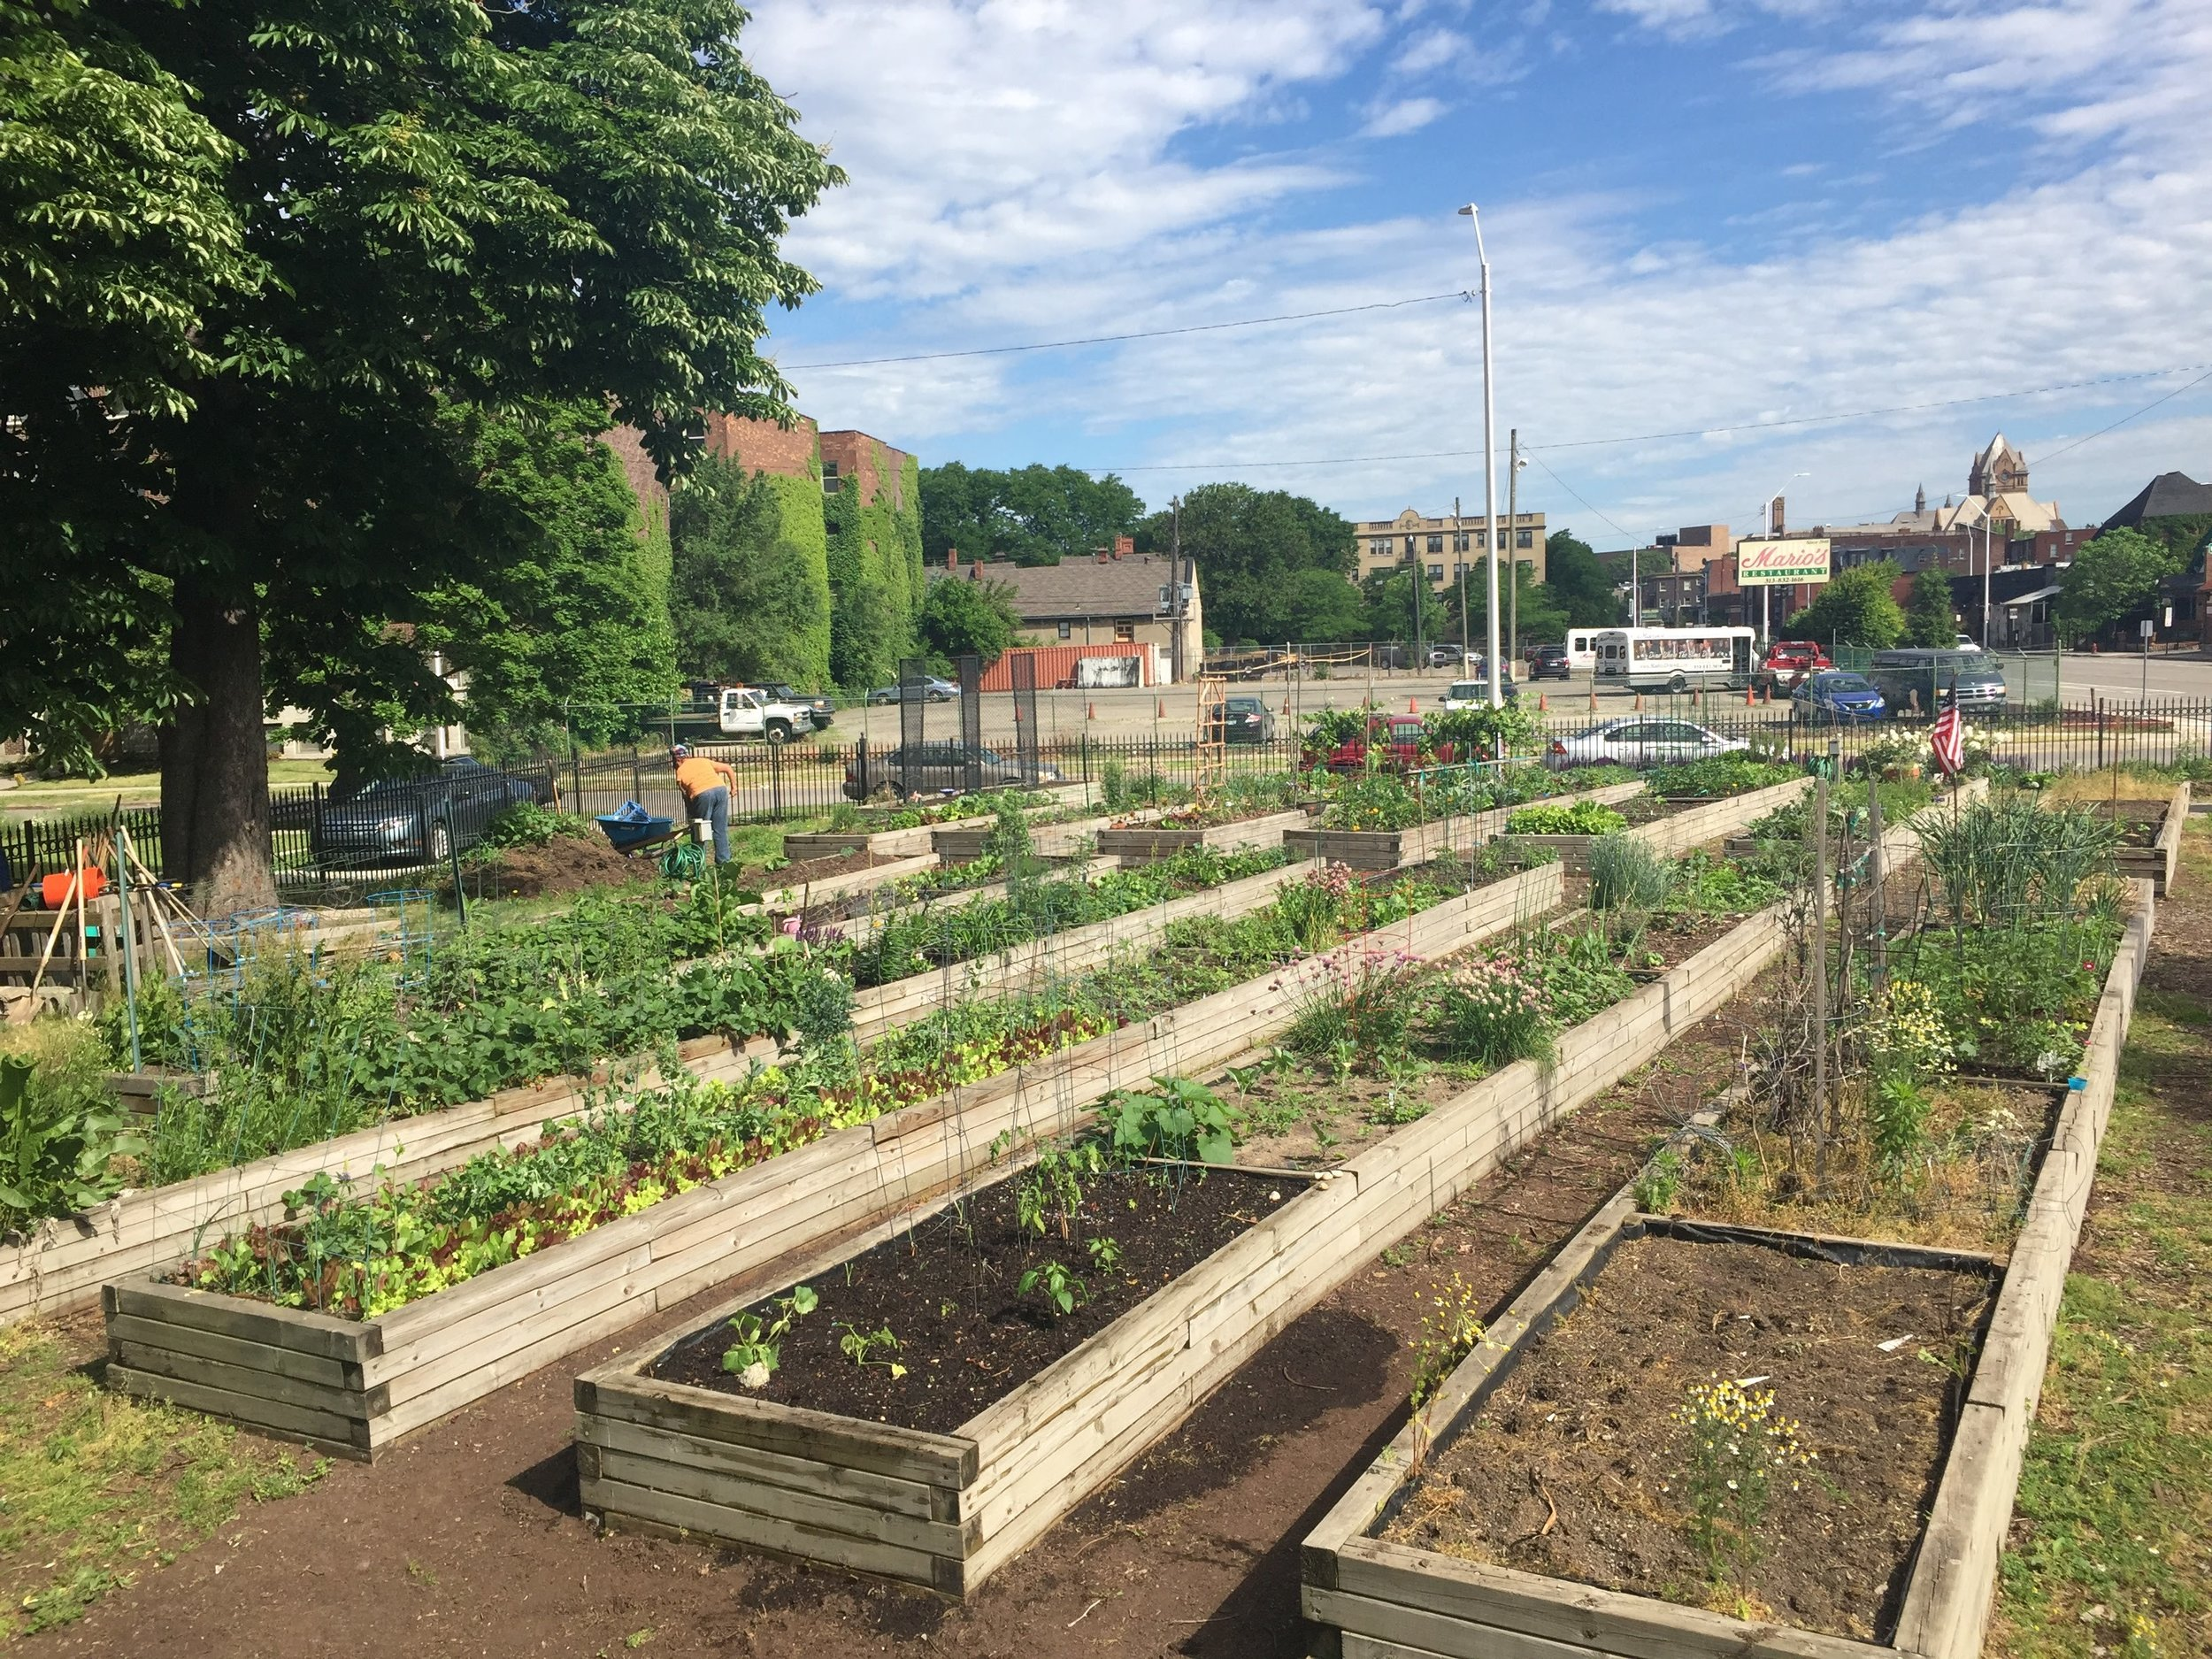 The effects of urban agriculture on wild bee communities - Smith Fellows postdoctoral research programhttps://conbio.org/mini-sites/smith-fellows/meet-the-fellows/2015-fellows/rebecca-tonietto